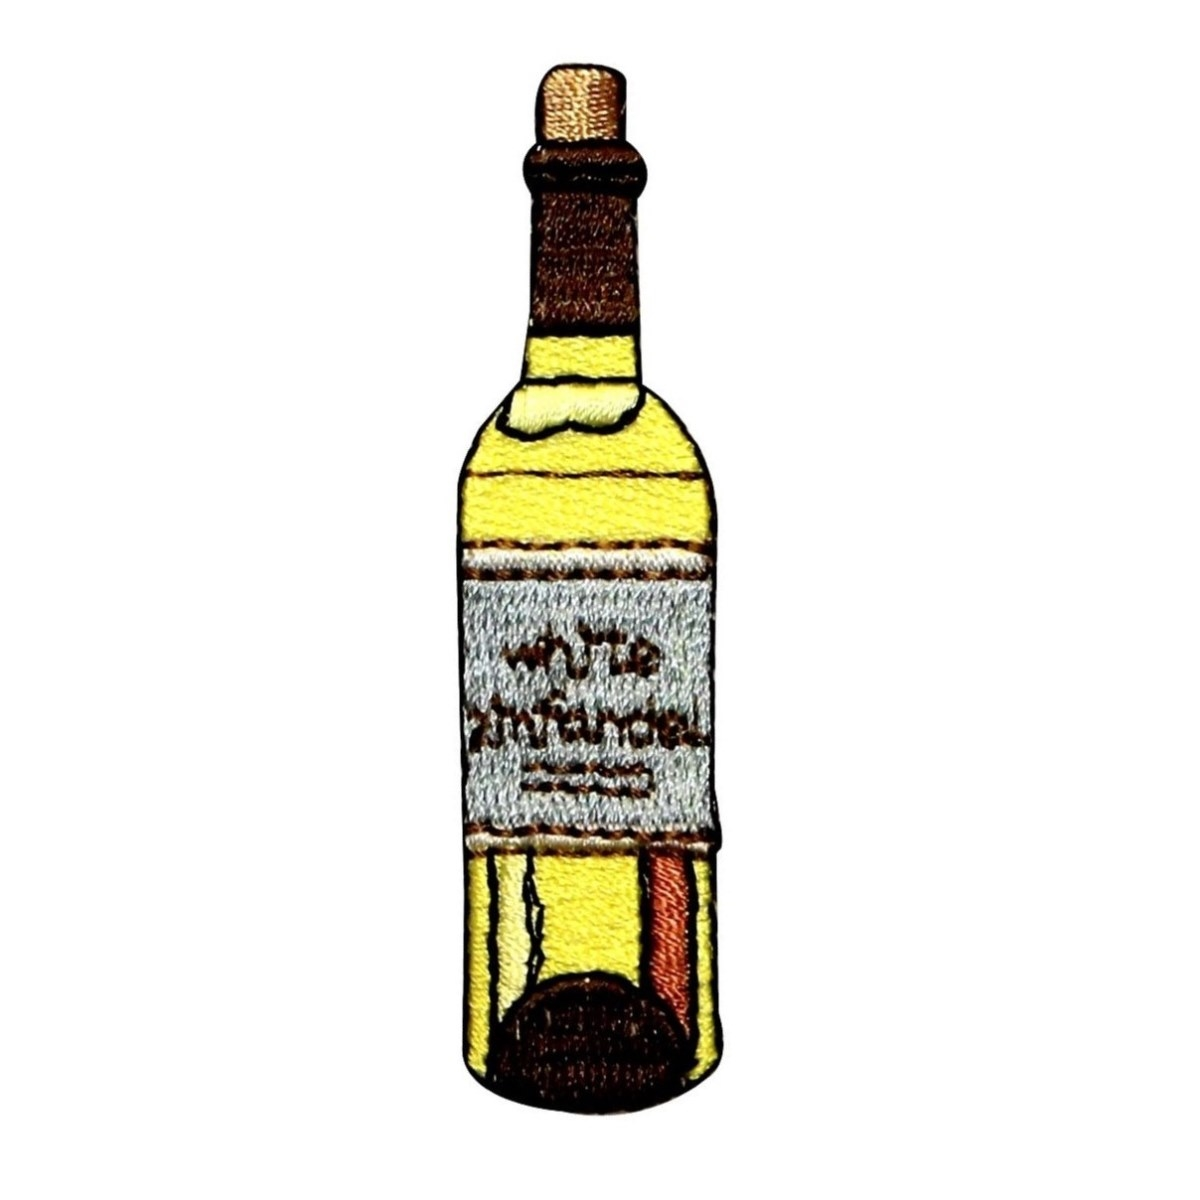 ID 1146 Wine Bottle Patch White Zinfandel Glass Embroidered Iron On Applique